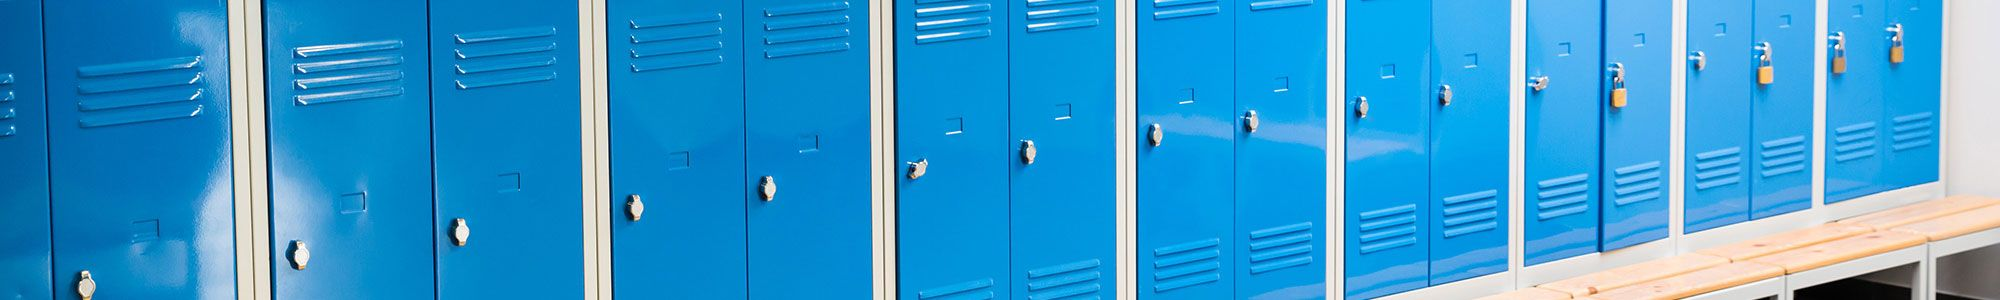 Row of blue school lockers